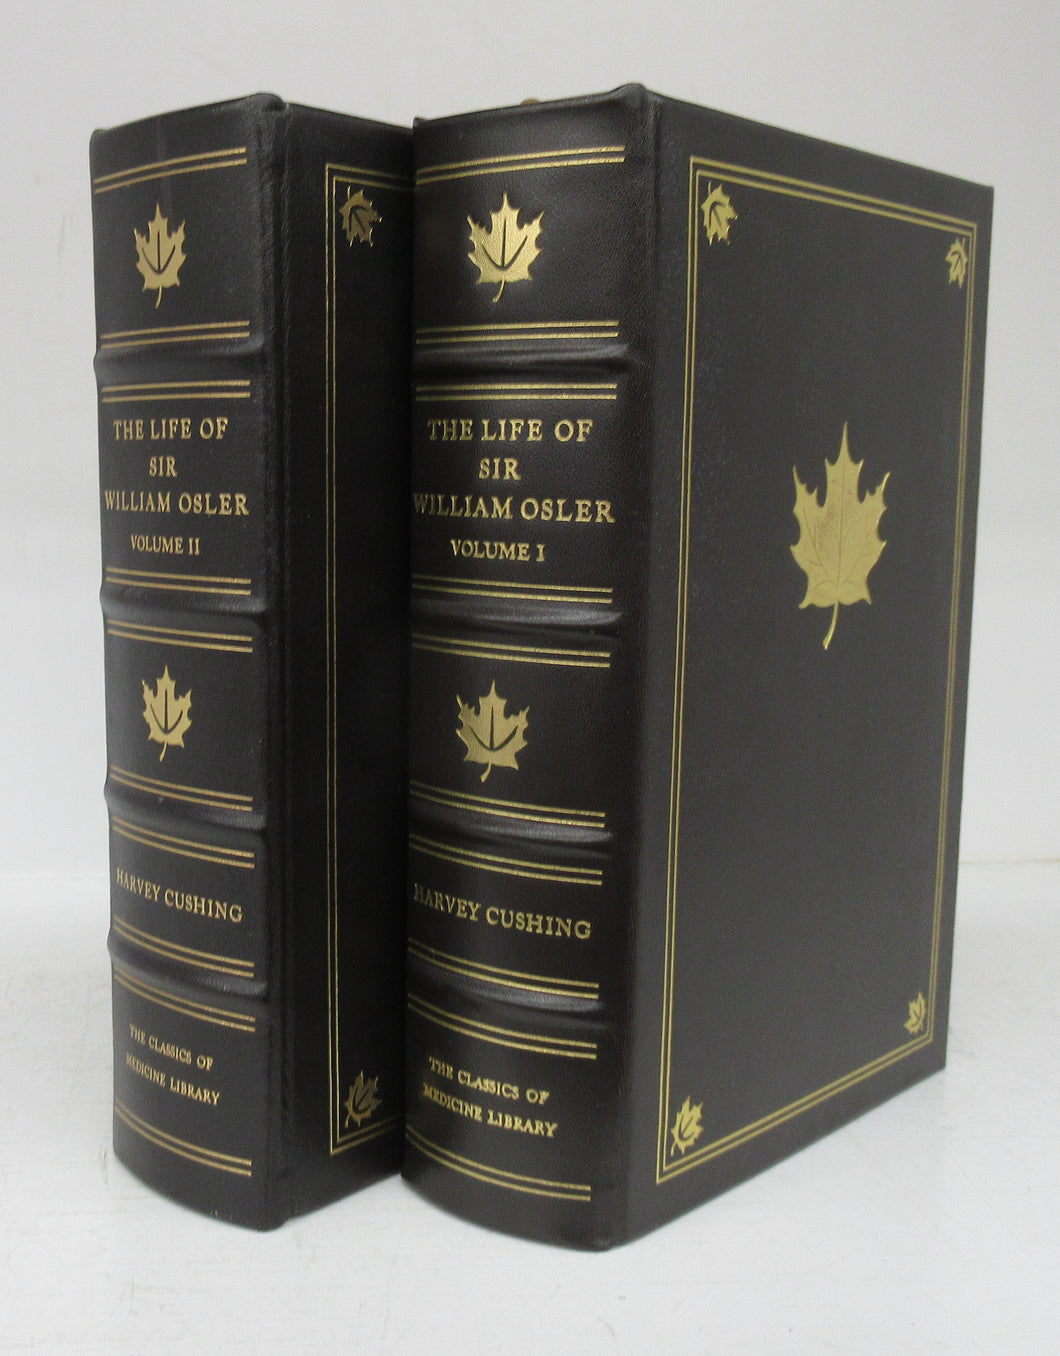 The Life of Sir William Osler Vols. I & II